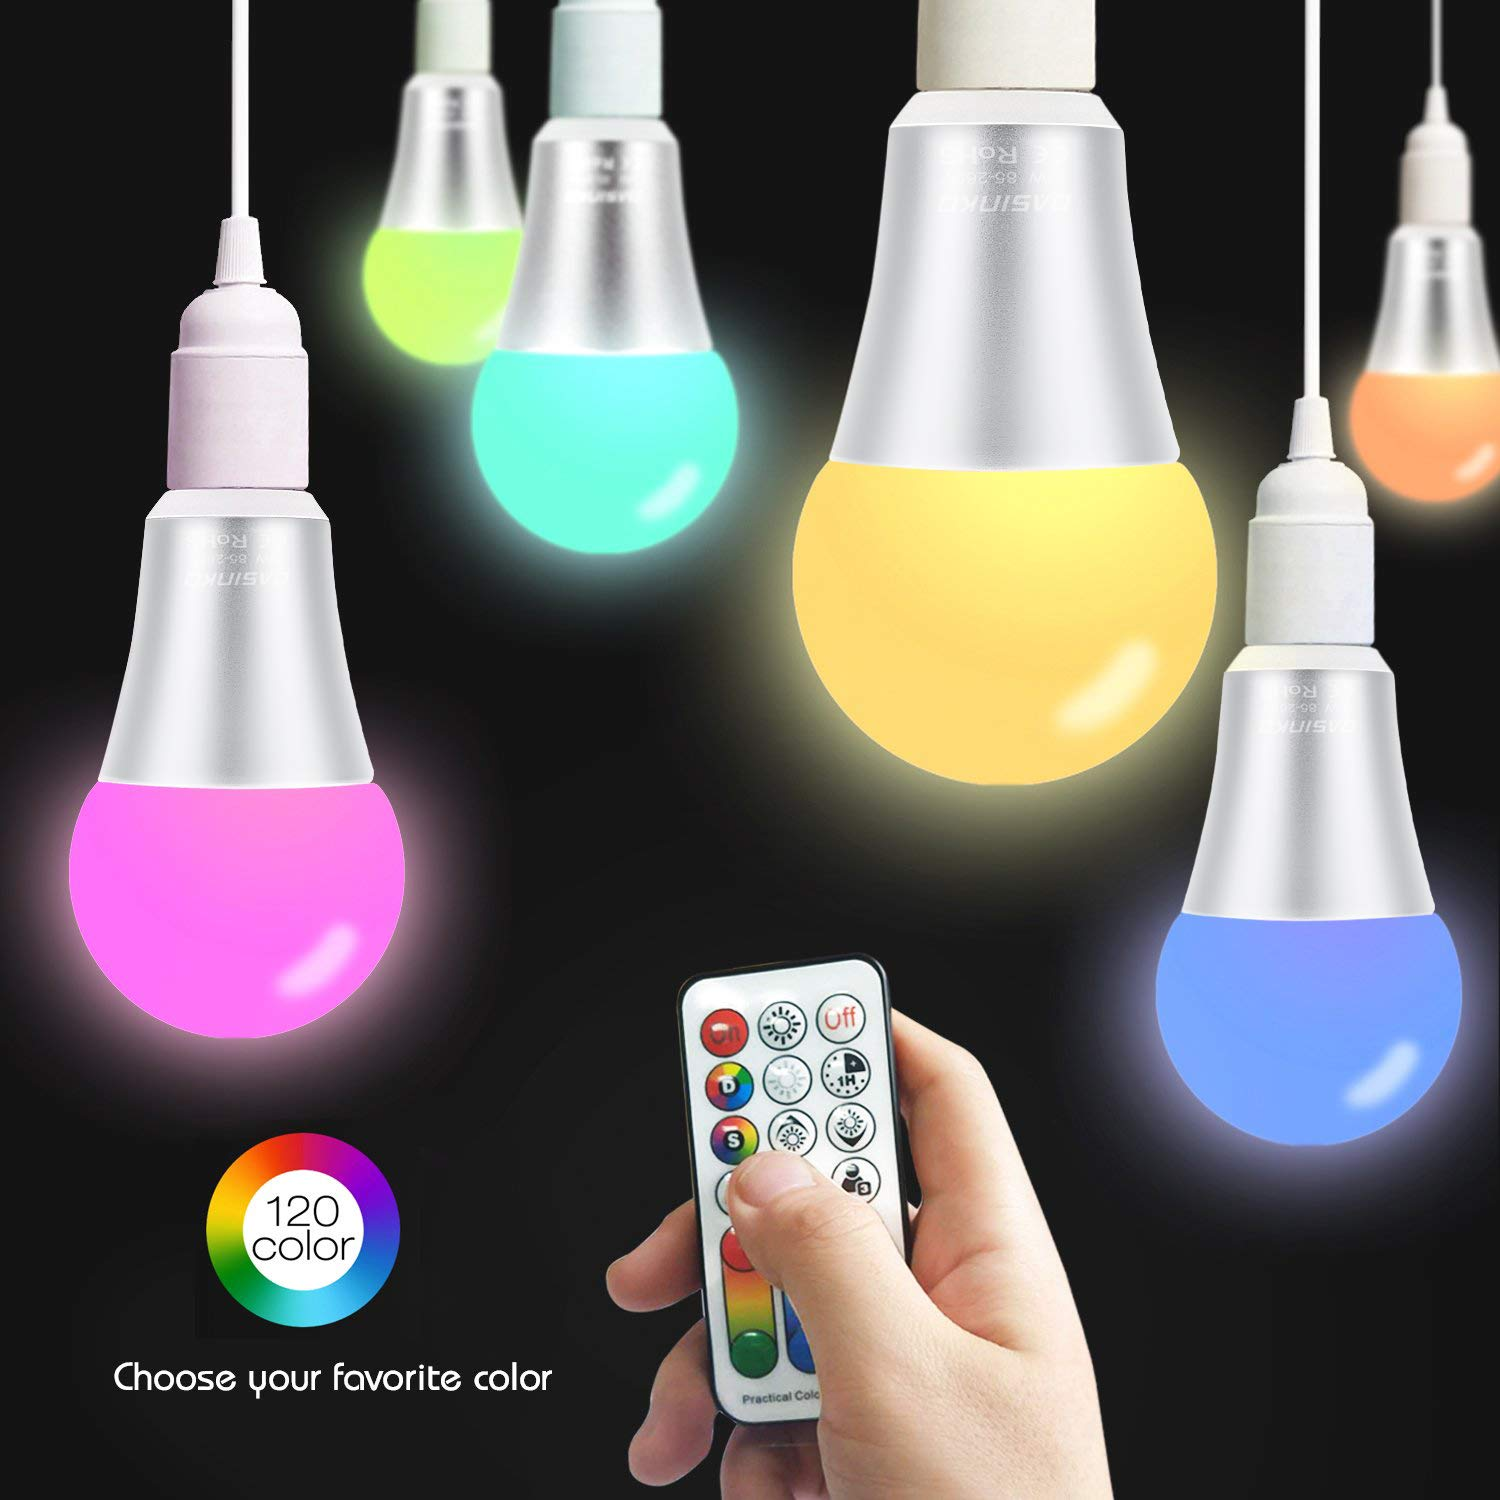 Colour Changing Light Bulb 10W B22 Edison Screw RGBW Lights,120 Color Choices,RGB+Warm White Coloured,Dual Memory,60 Watt Equivalent Remote Controller Included for Home Party Decoration,2-Pack